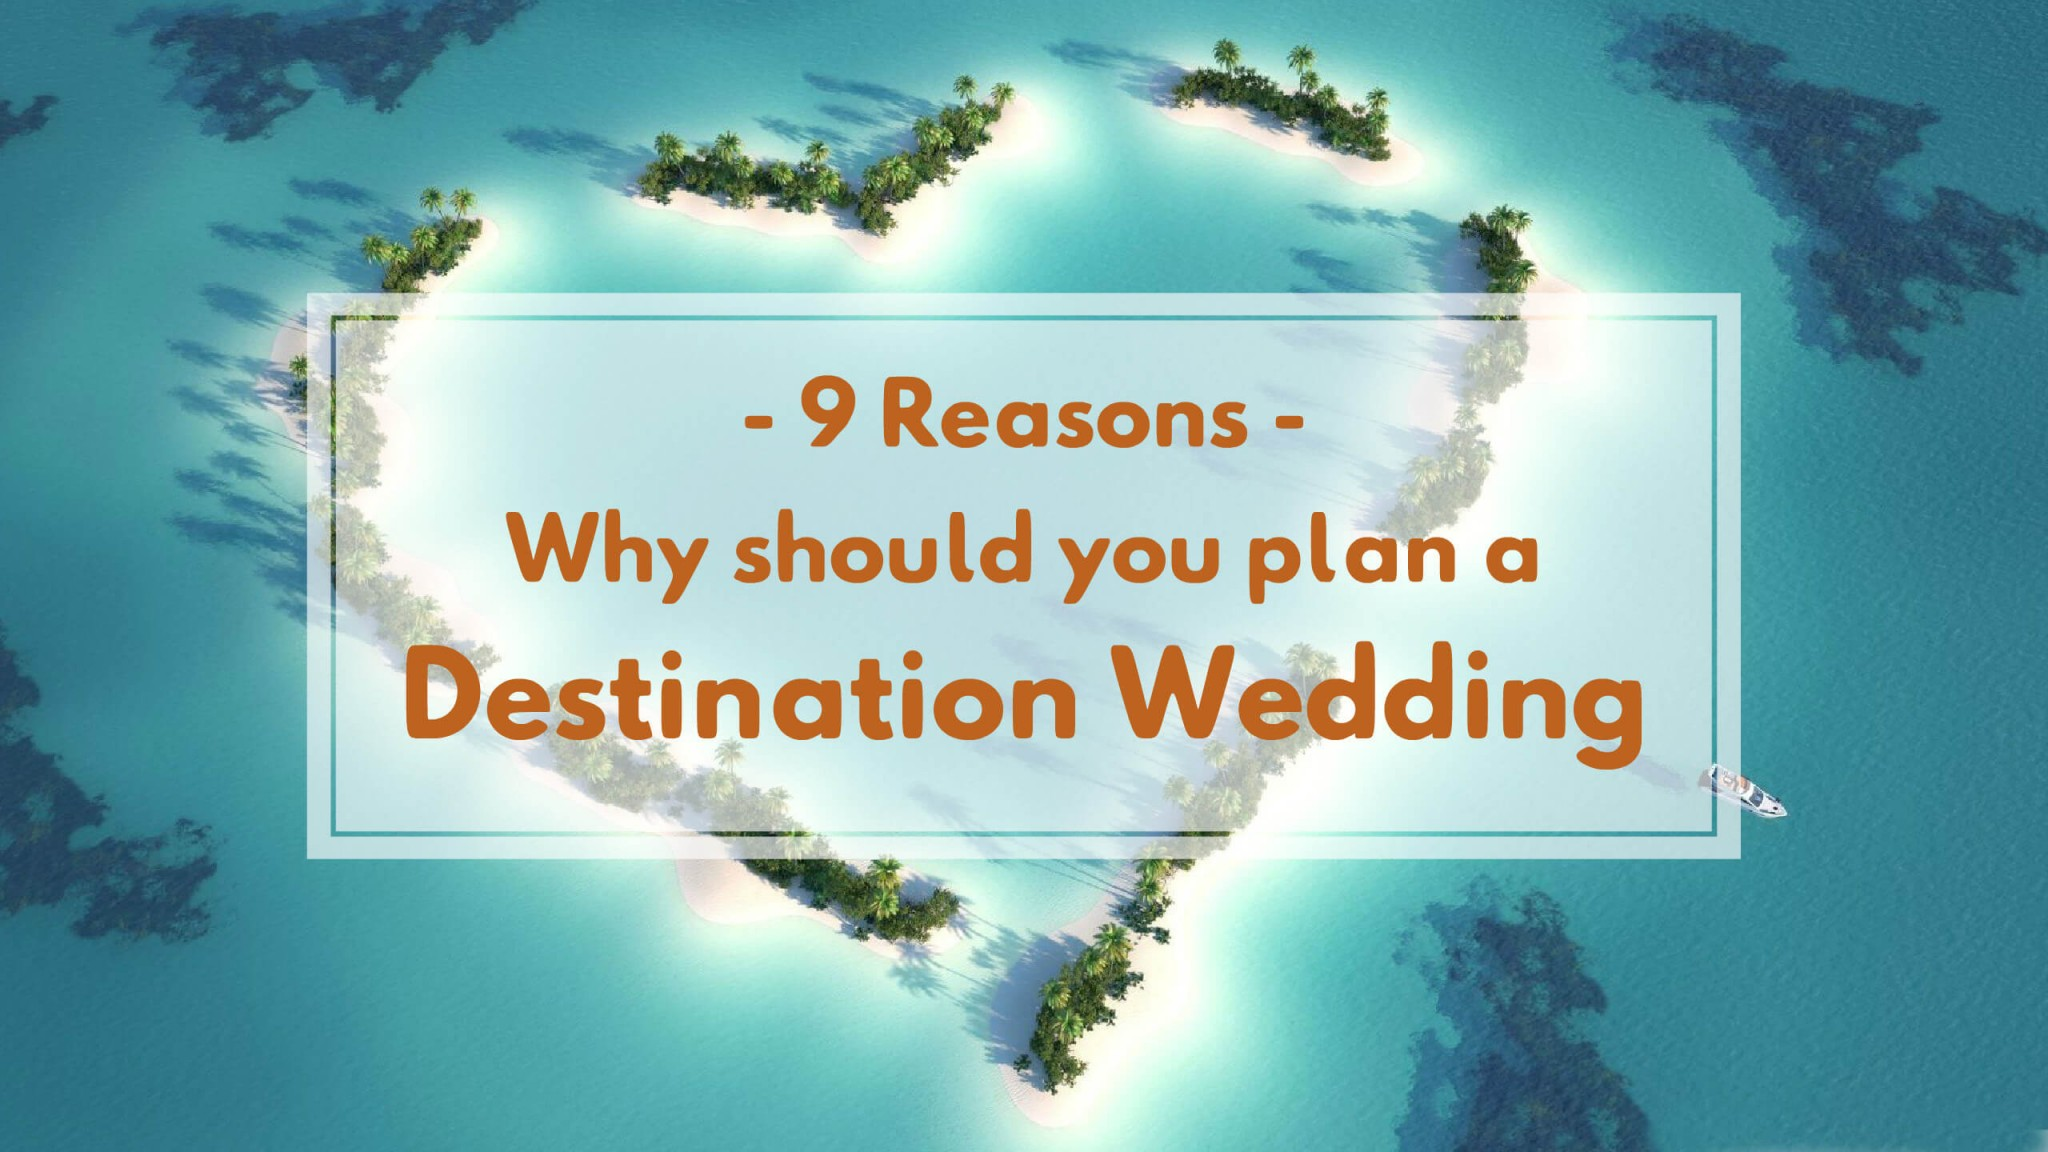 9 reasons why you should plan a destination wedding